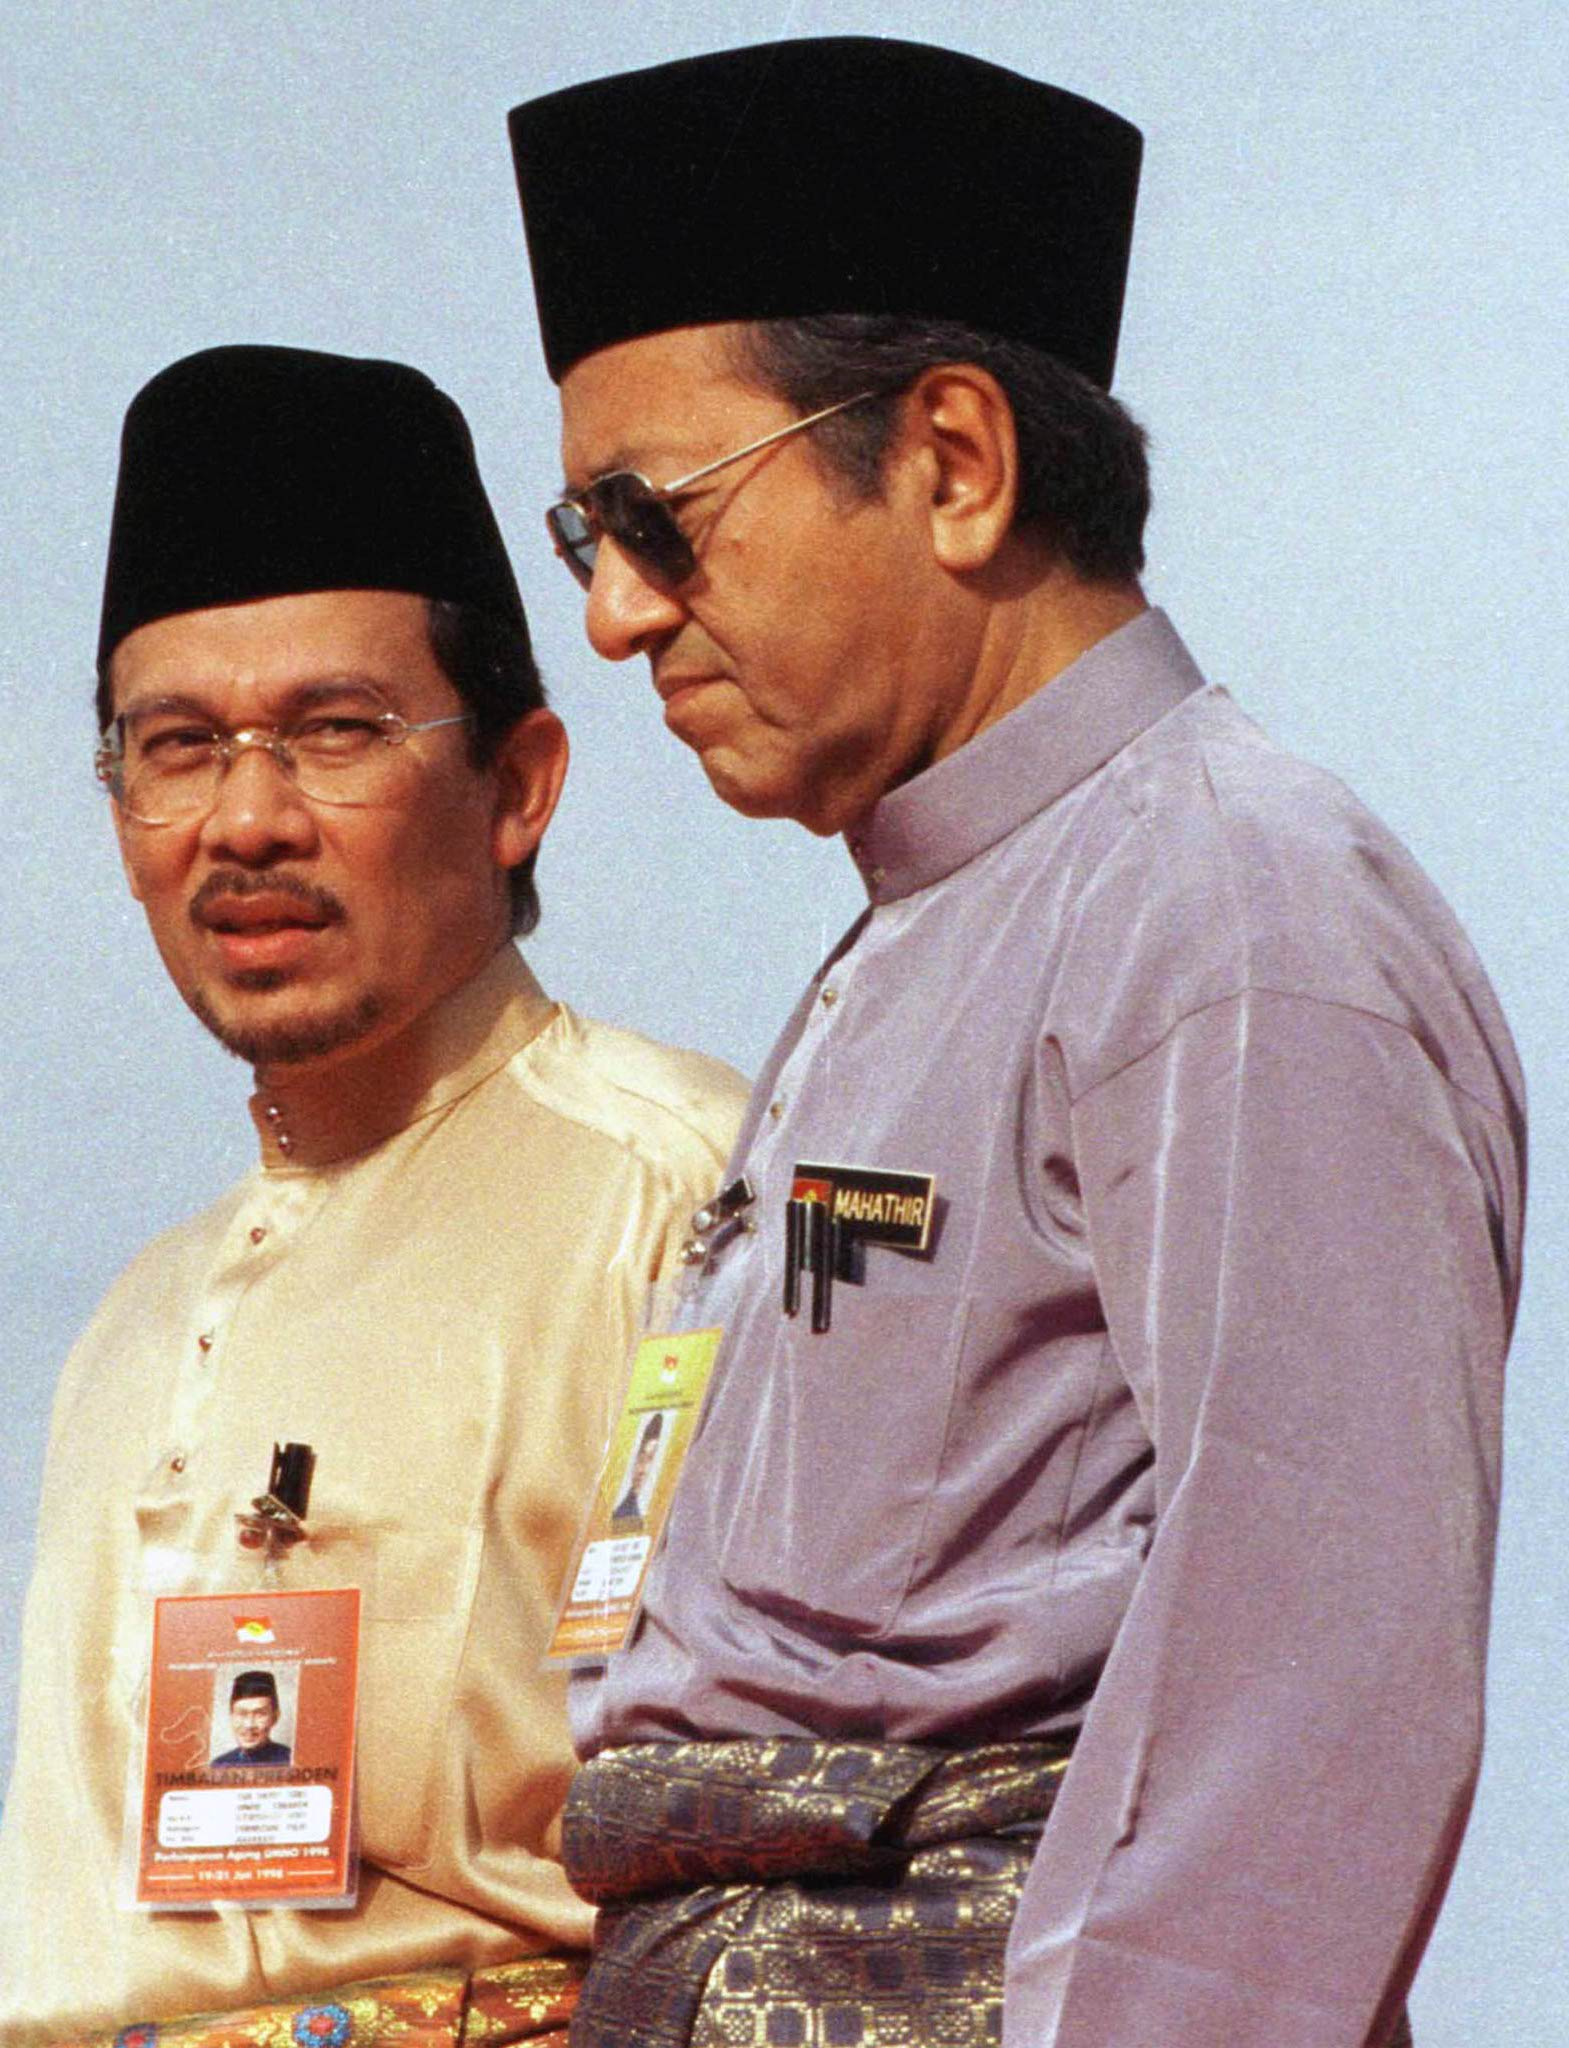 Malaysian Deputy Prime Minister Anwar Ibrahim (L) walks with Prime Minister Mahathir Mohamad in Kuala Lumpur on June 19, 1998.